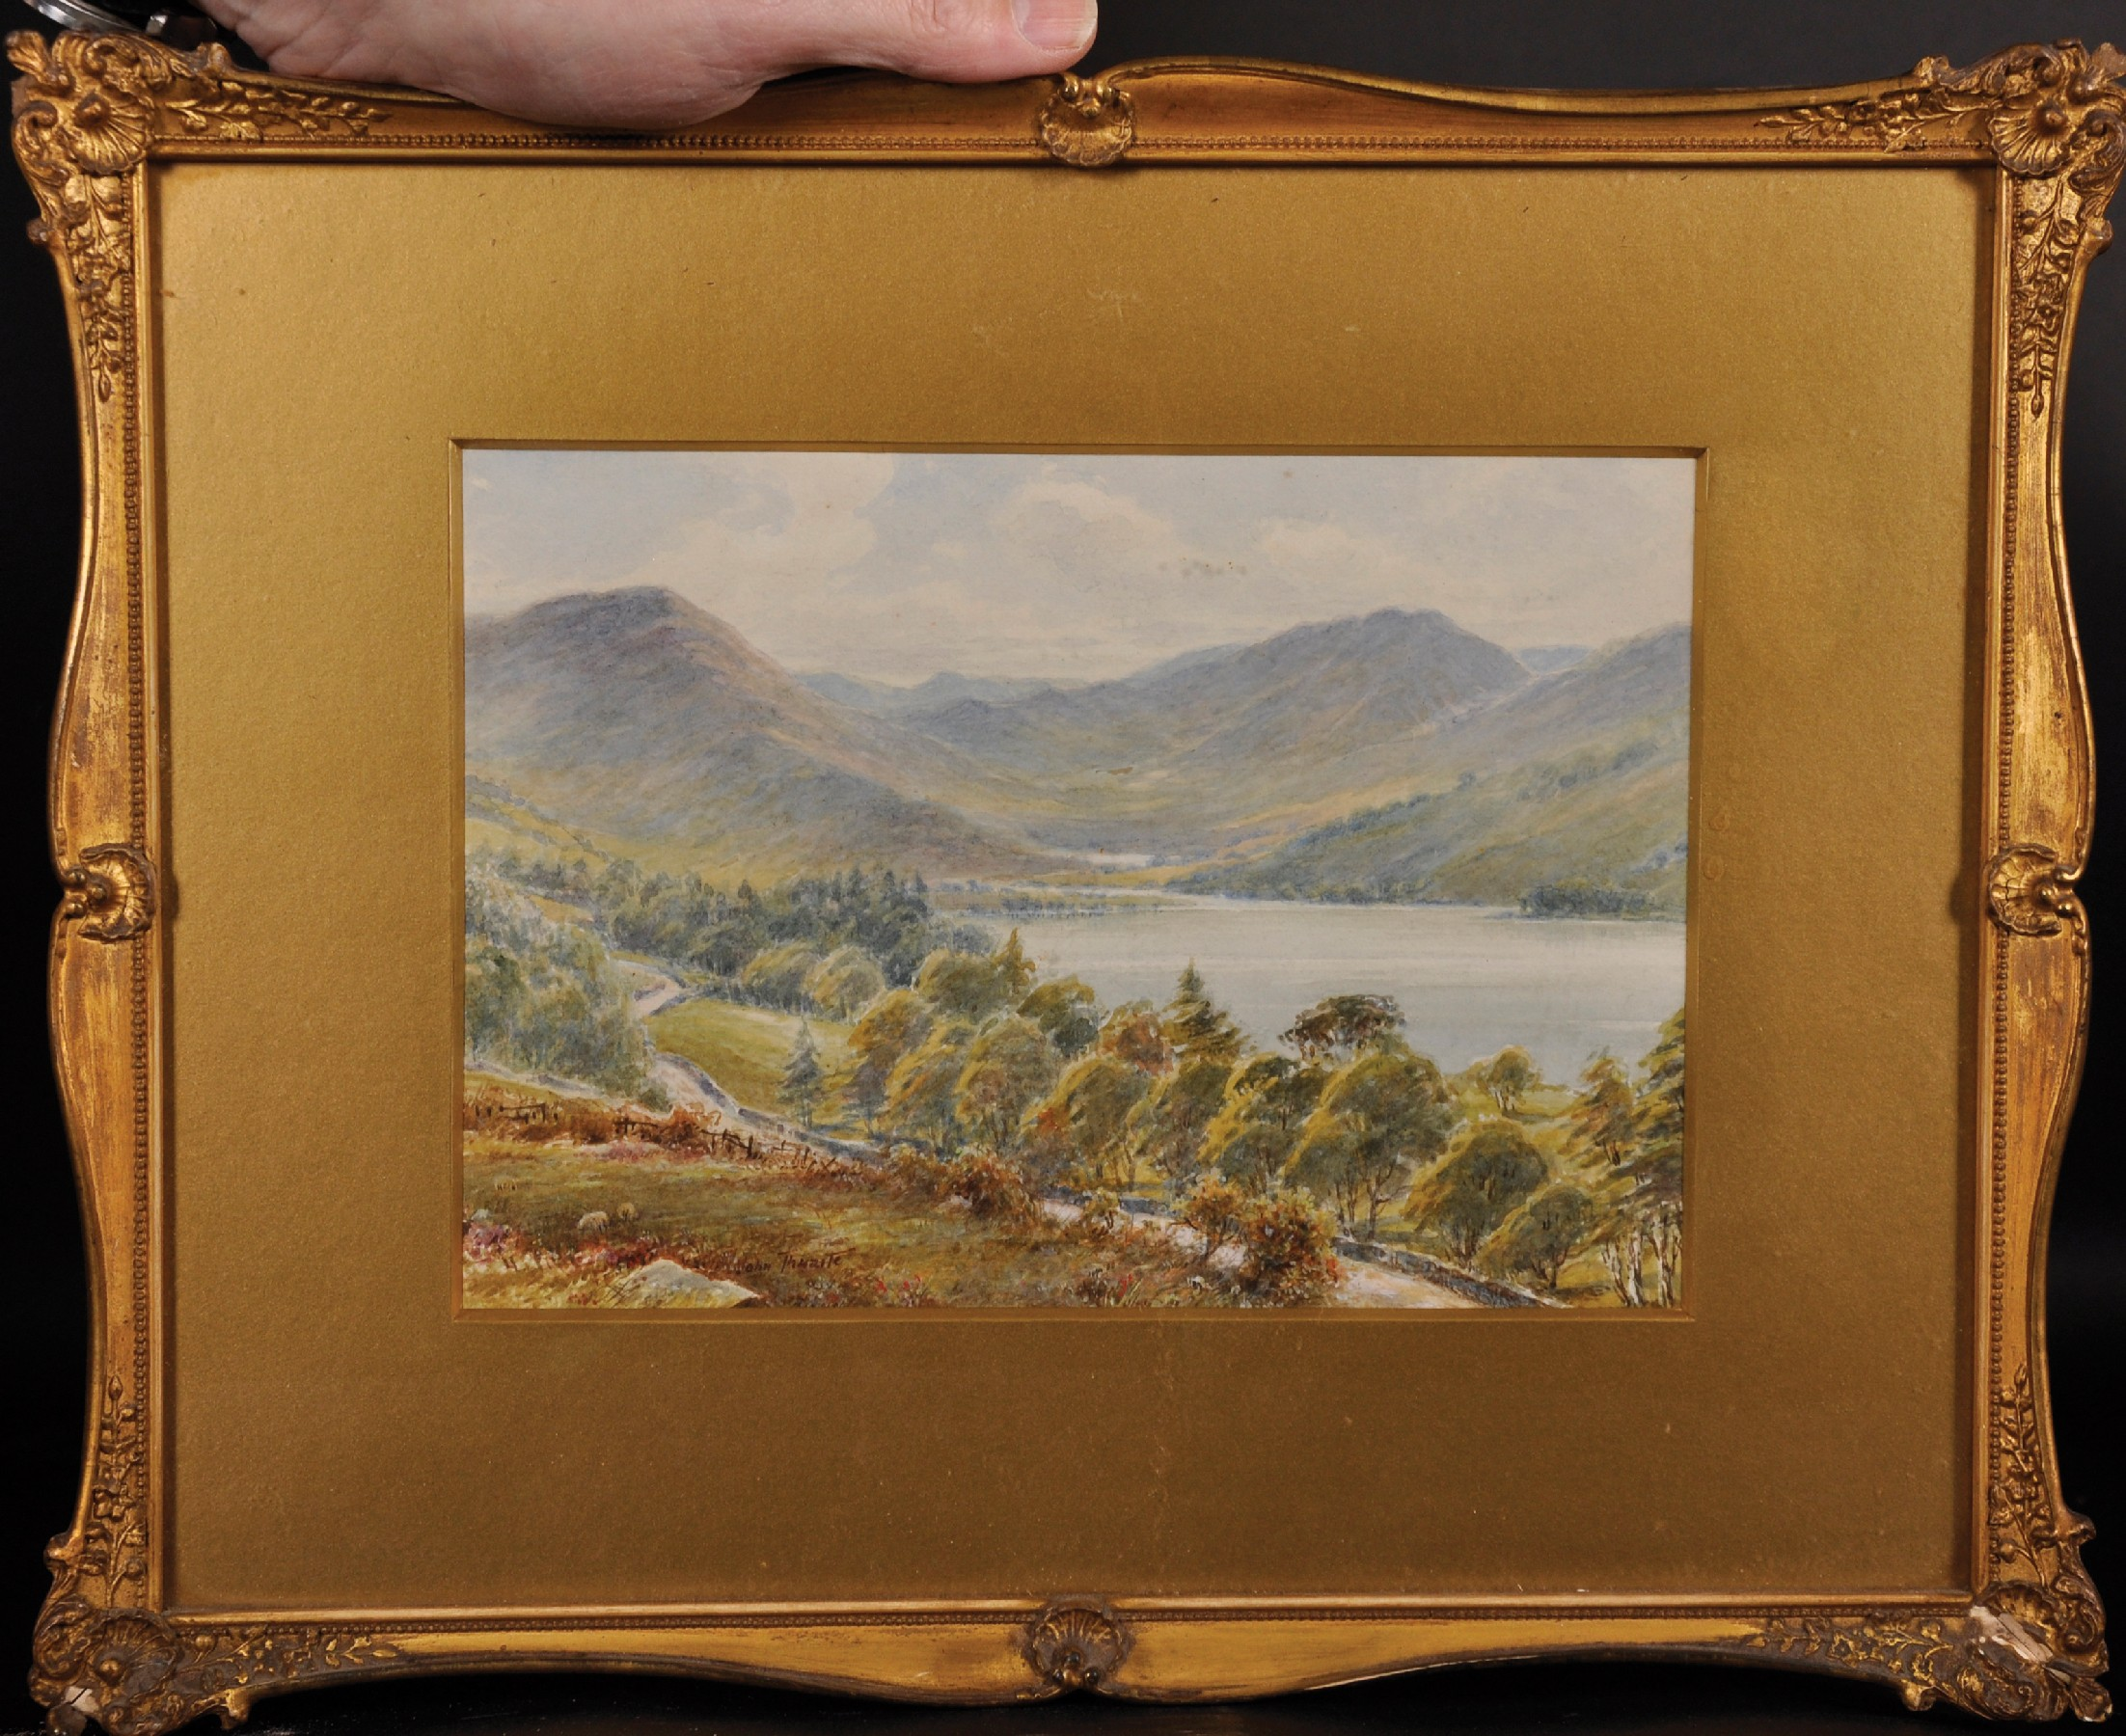 """John Thwaite (19th - 20th Century) British. """"Head of Buttermere"""", Watercolour, Signed, and Inscribed - Image 2 of 5"""